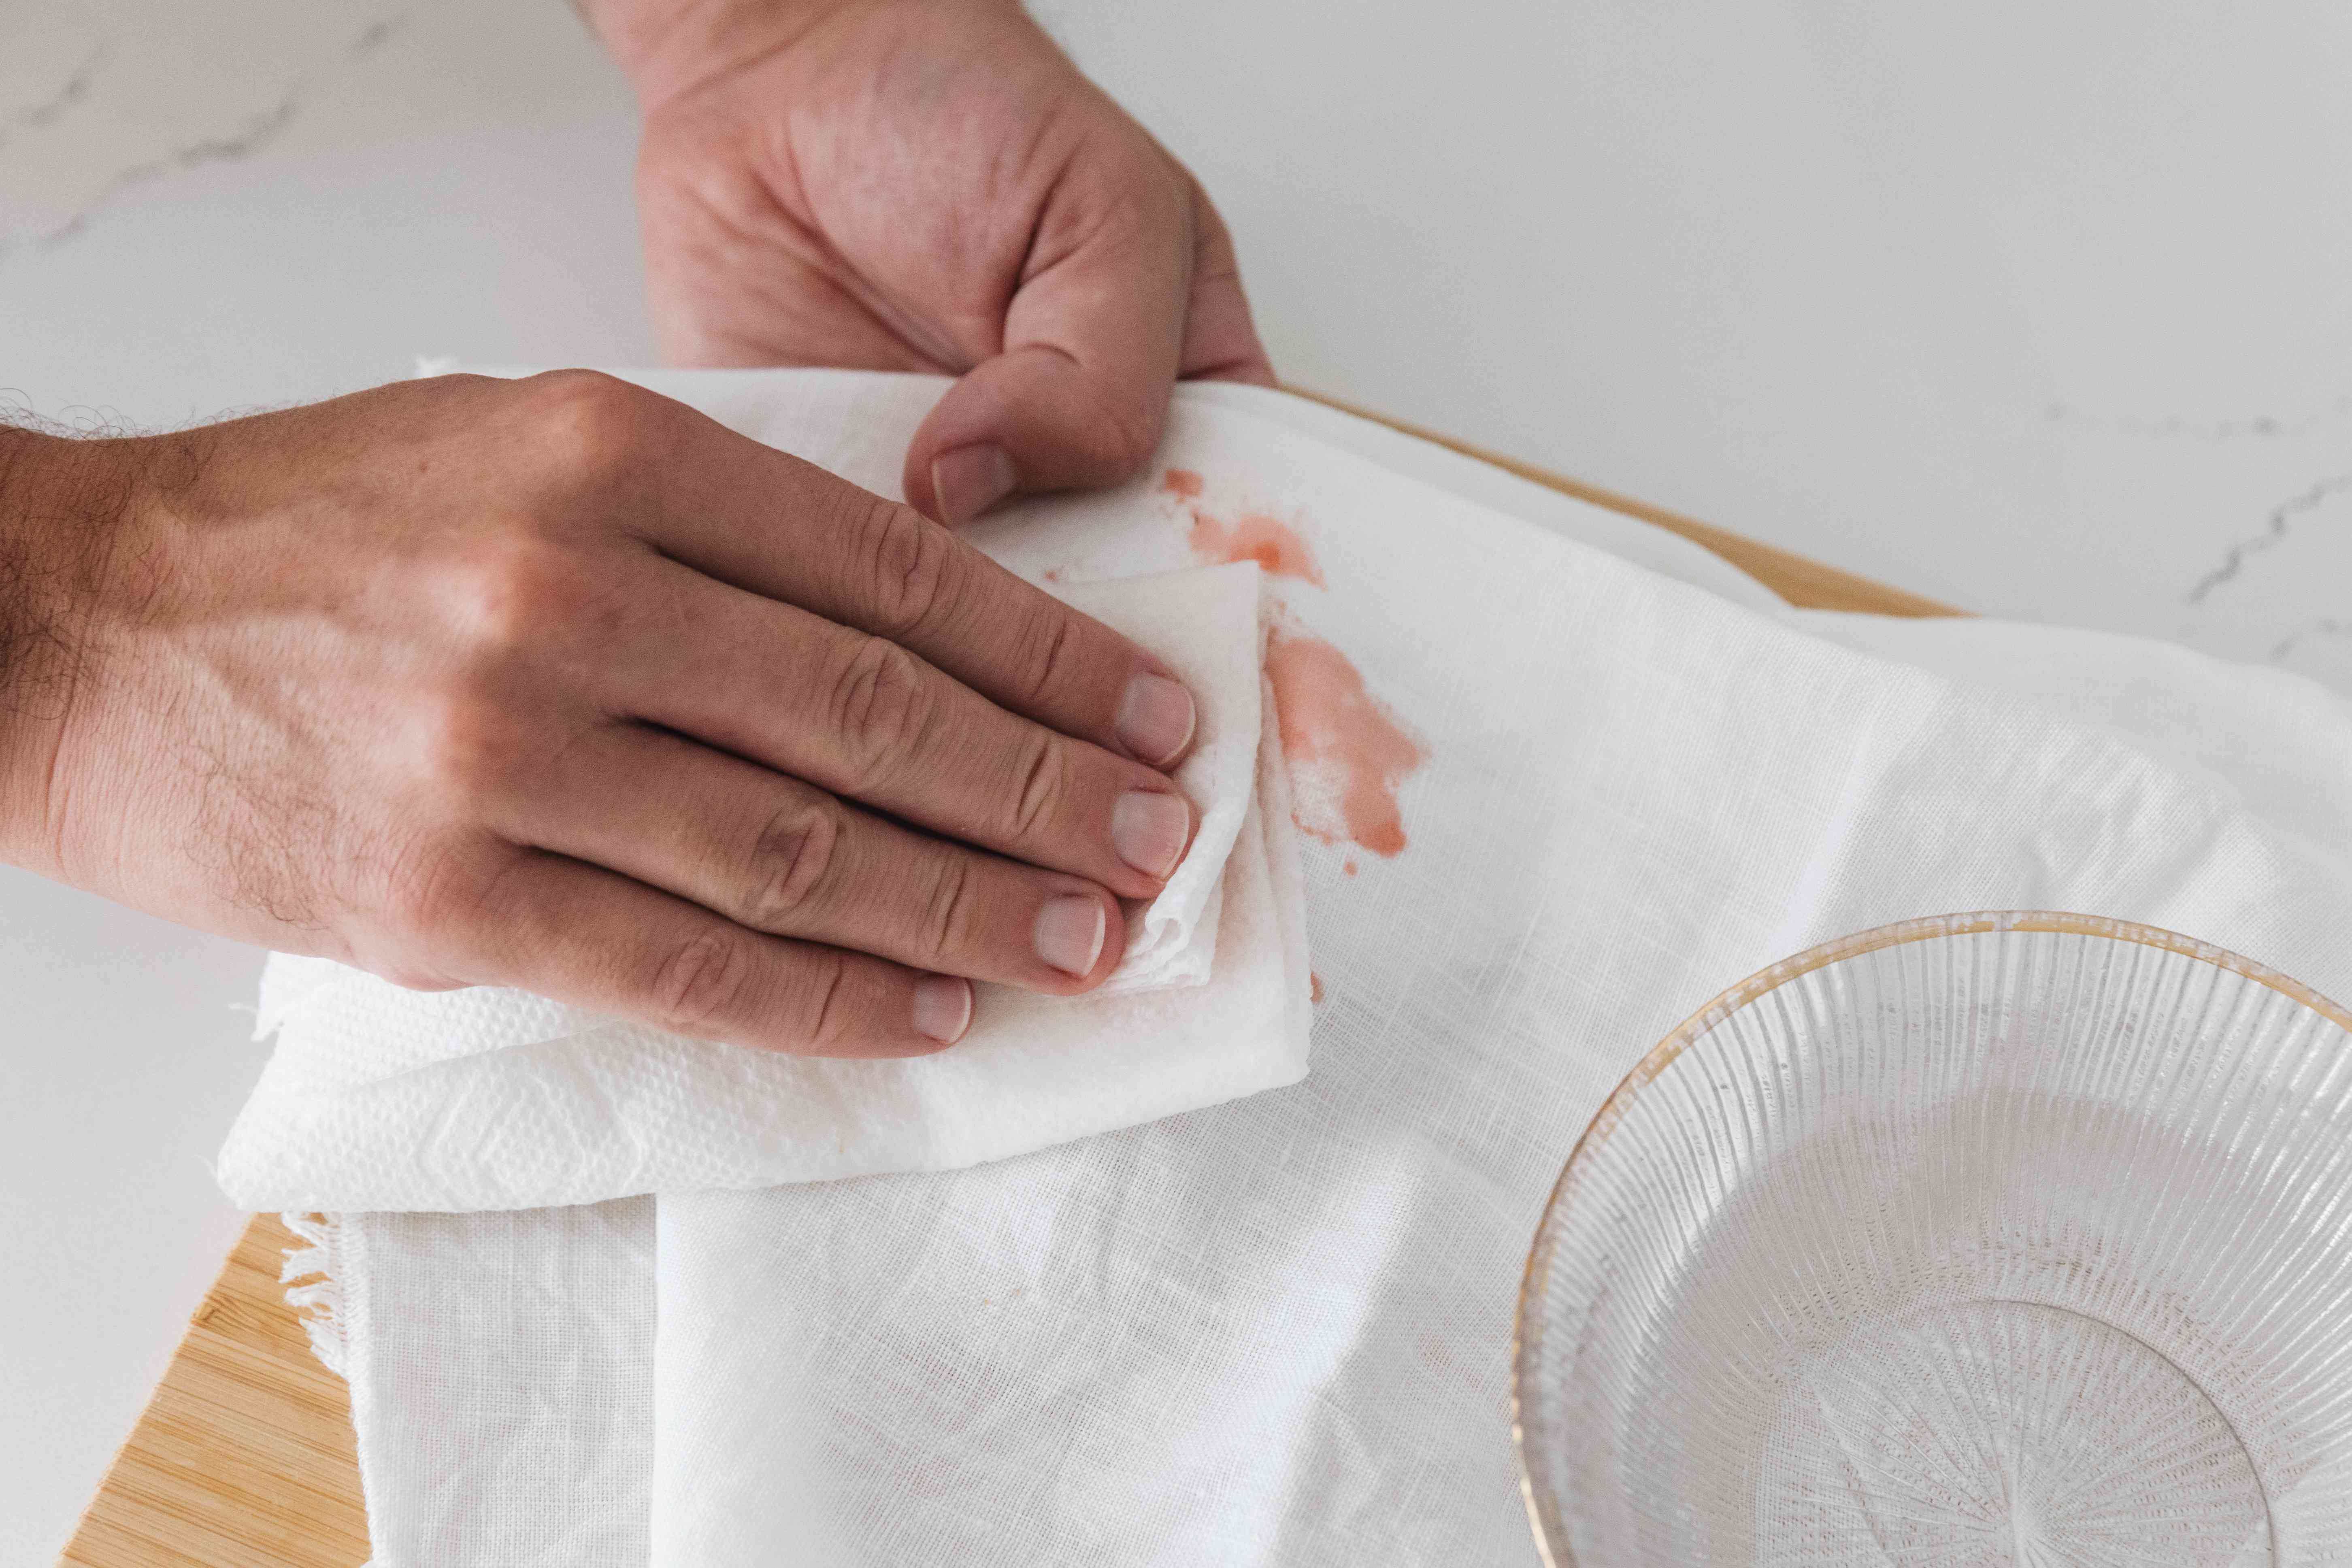 blotting dry clean only fabric